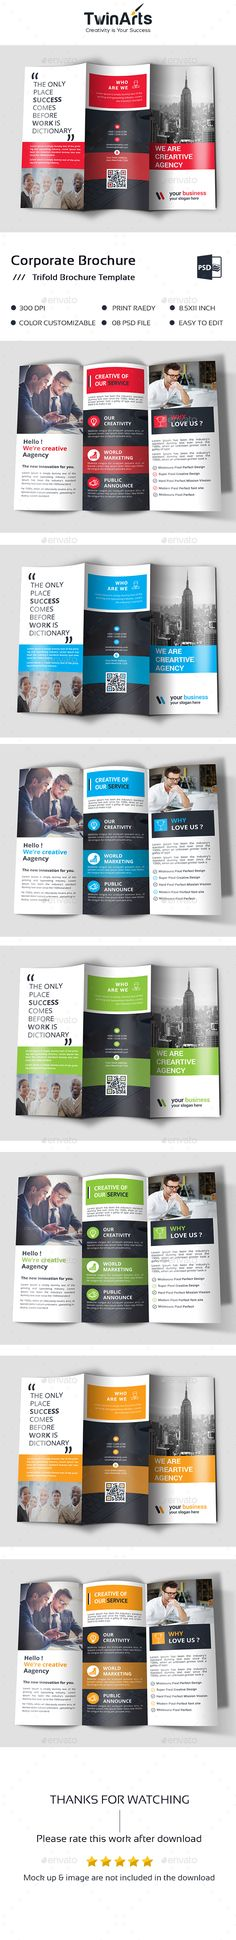 Trifold — Photoshop PSD #print ready #company • Available here → https://graphicriver.net/item/trifold/18013445?ref=pxcr